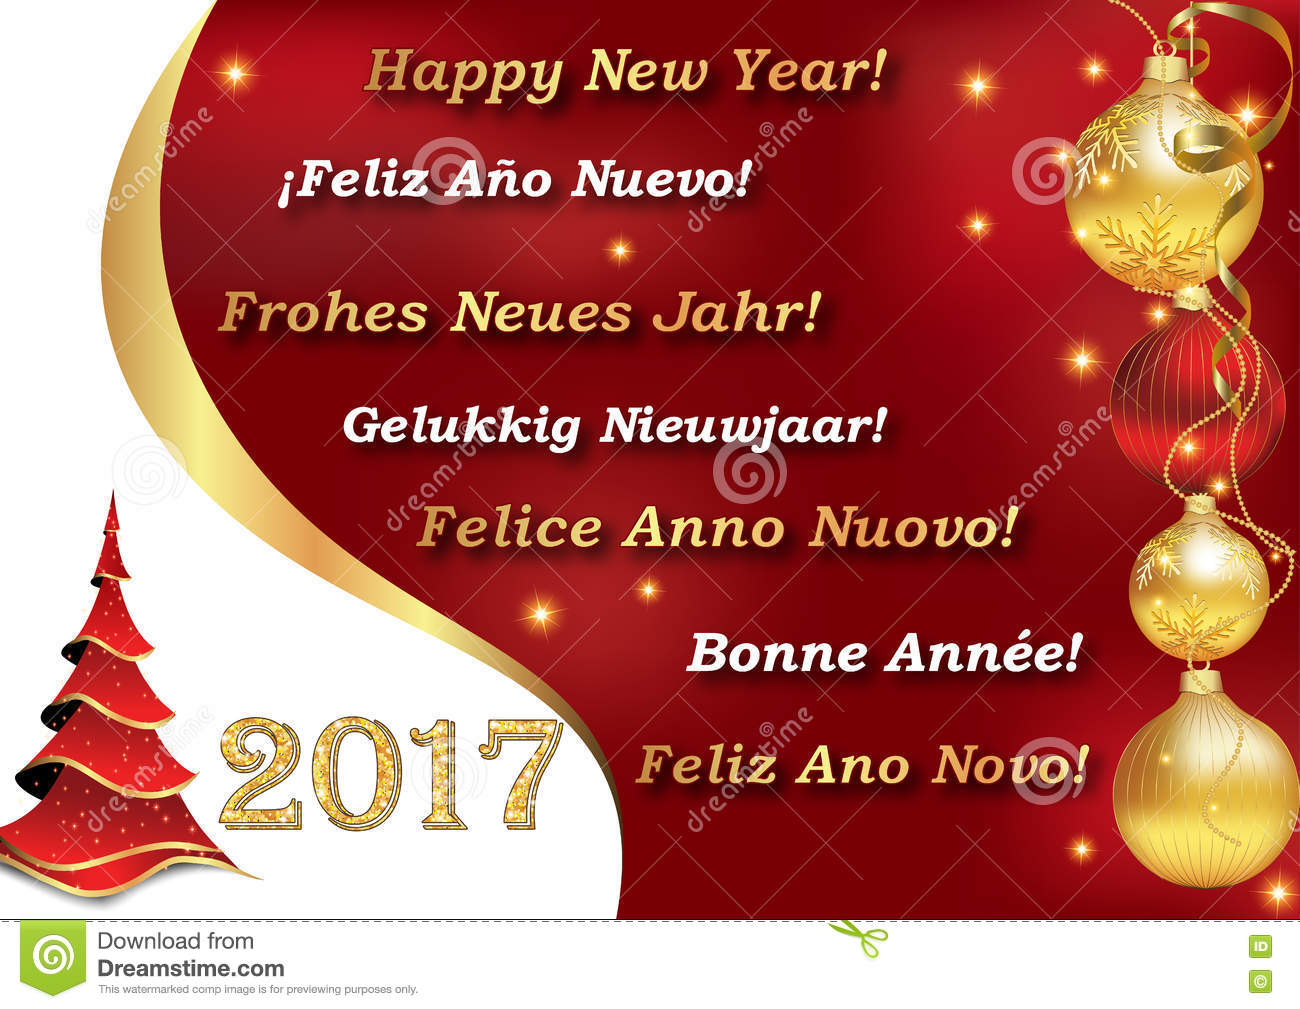 Christmas And New Year Greeting Card Messages Image Collections